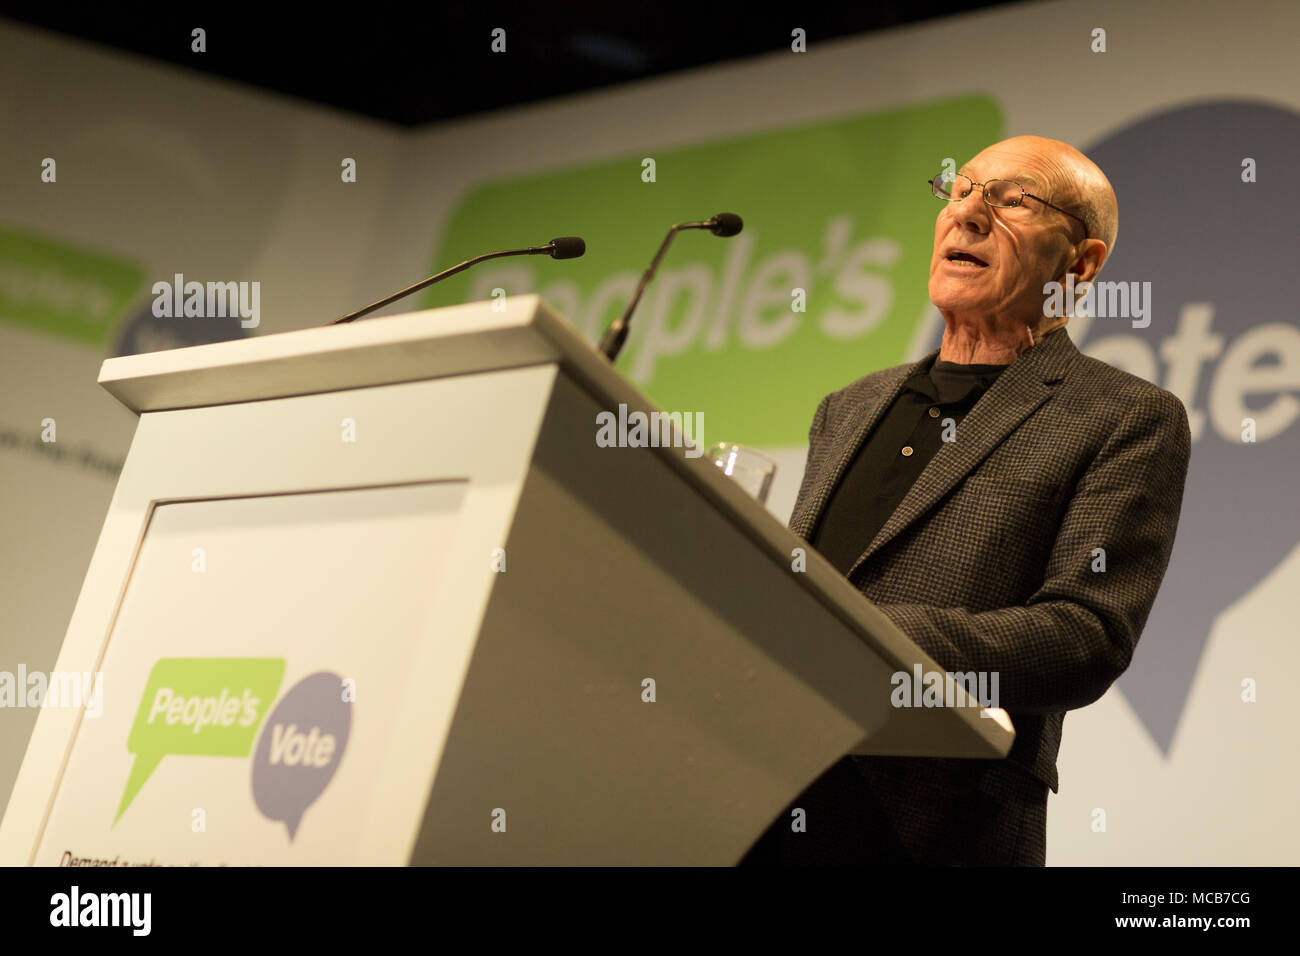 London, UK. 15th April, 2018. Sir Patrick Stewart launching the new People's Vote campaign calling for a public vote on the final Brexit deal before Britain leaves the EU, Camden, north London Credit: Radek Bayek/Alamy Live News Stock Photo